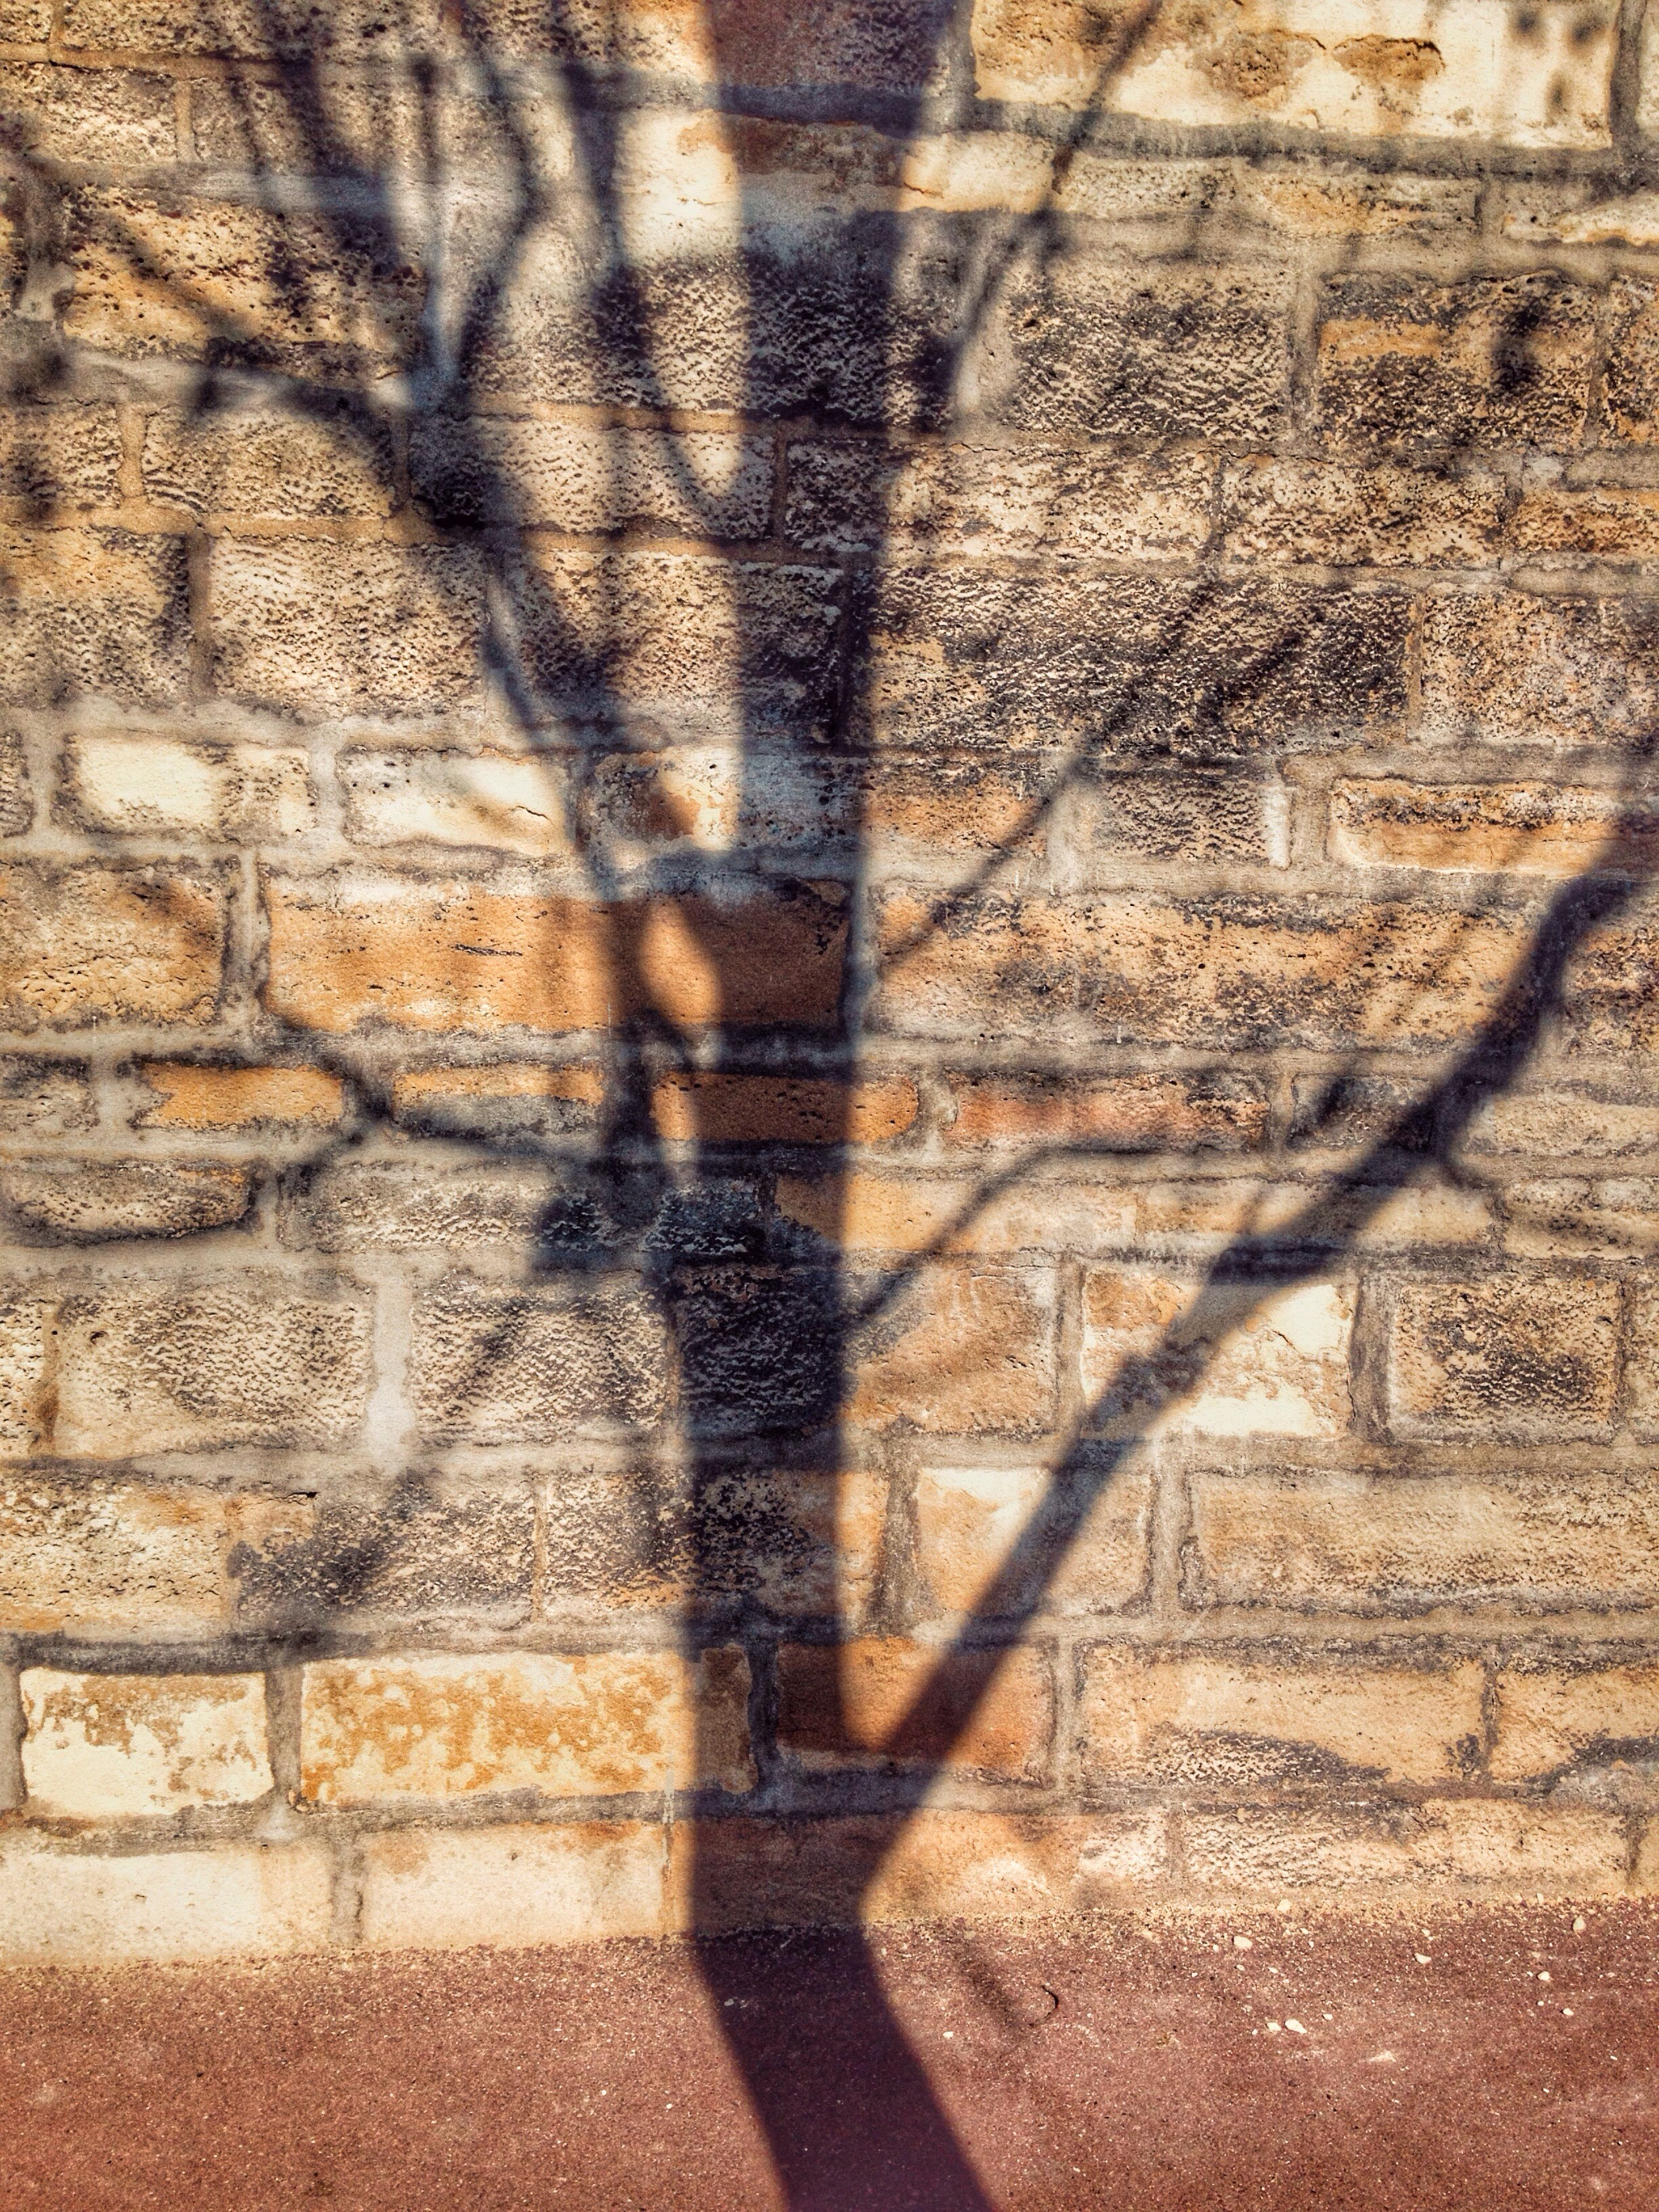 shadow, sunlight, wall - building feature, focus on shadow, high angle view, day, outdoors, footpath, textured, street, pattern, cobblestone, no people, sidewalk, nature, wall, built structure, tree, paving stone